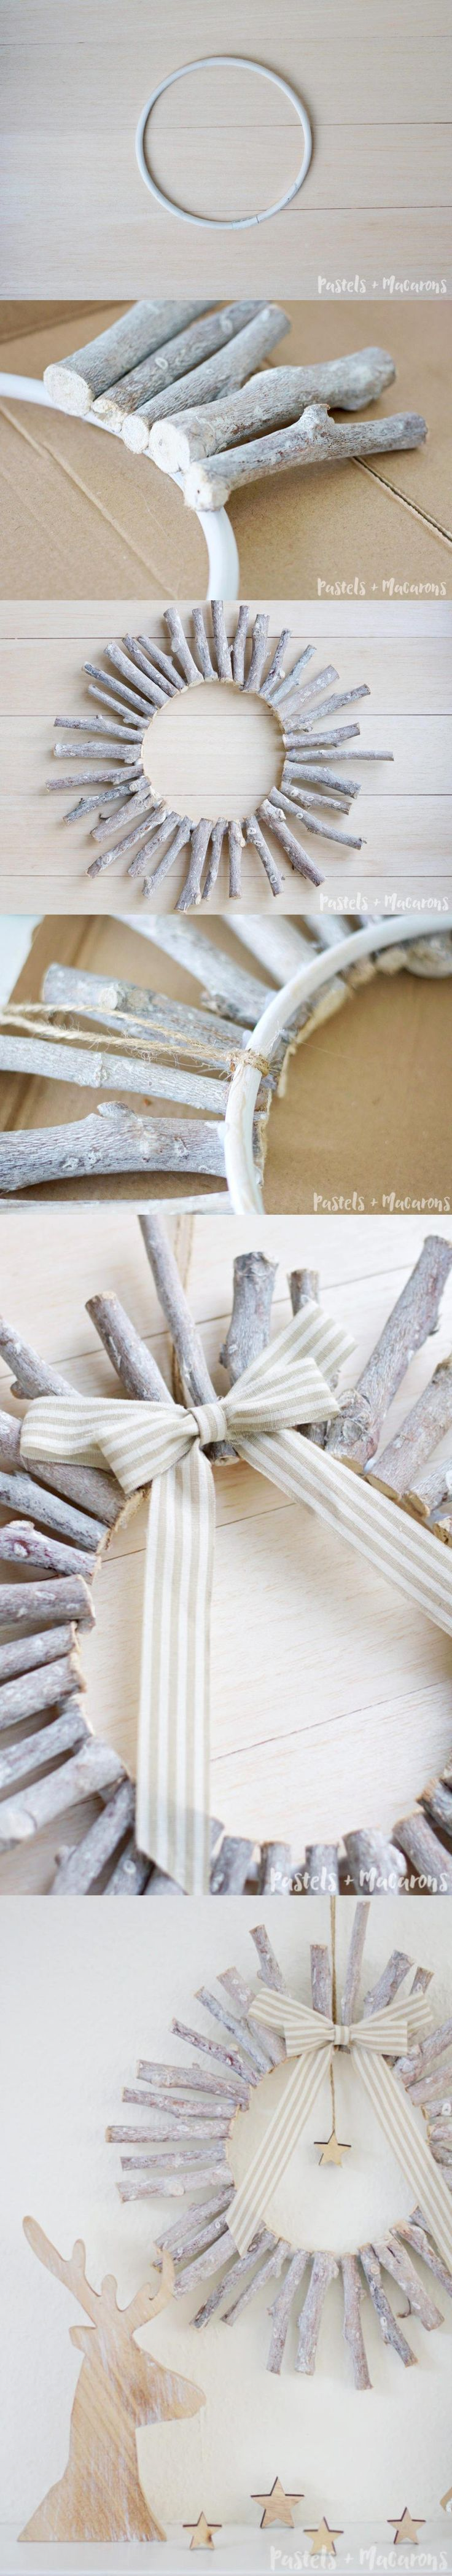 Corona de madera navideña - makingitinthemountains.com - DIY Christmas Wreath